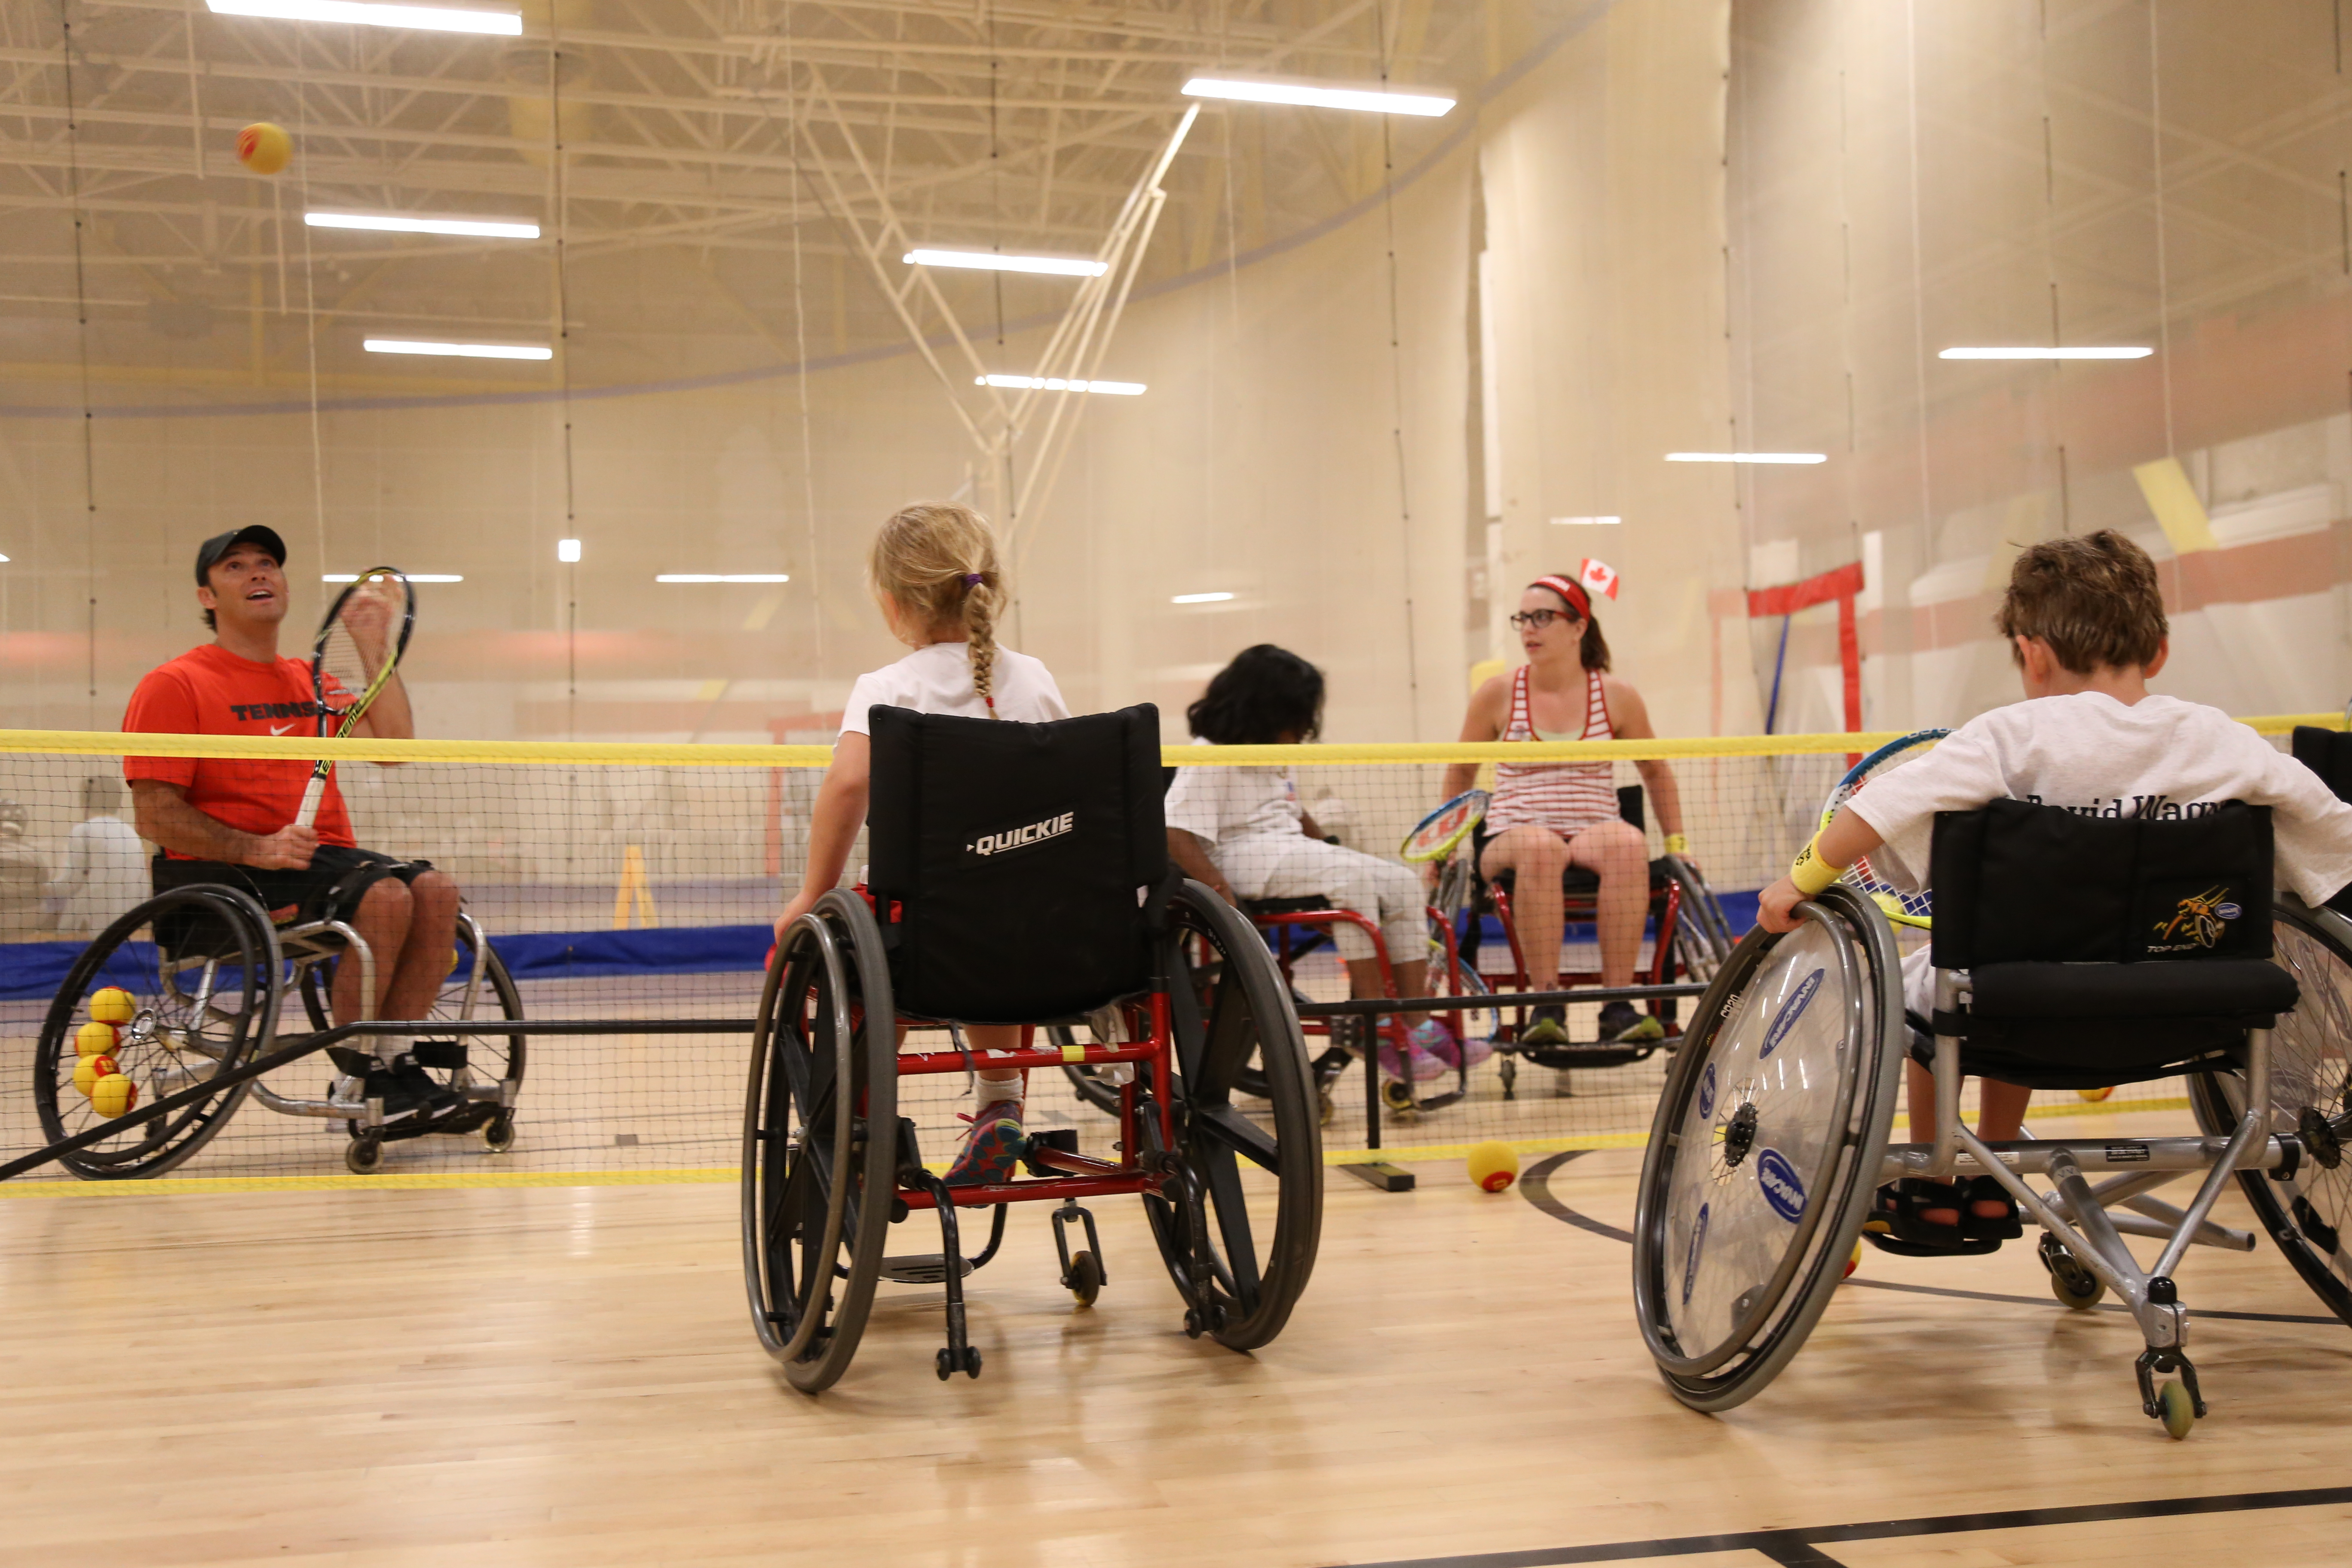 David Wagner and kids in wheelchairs at an indoor tennis court